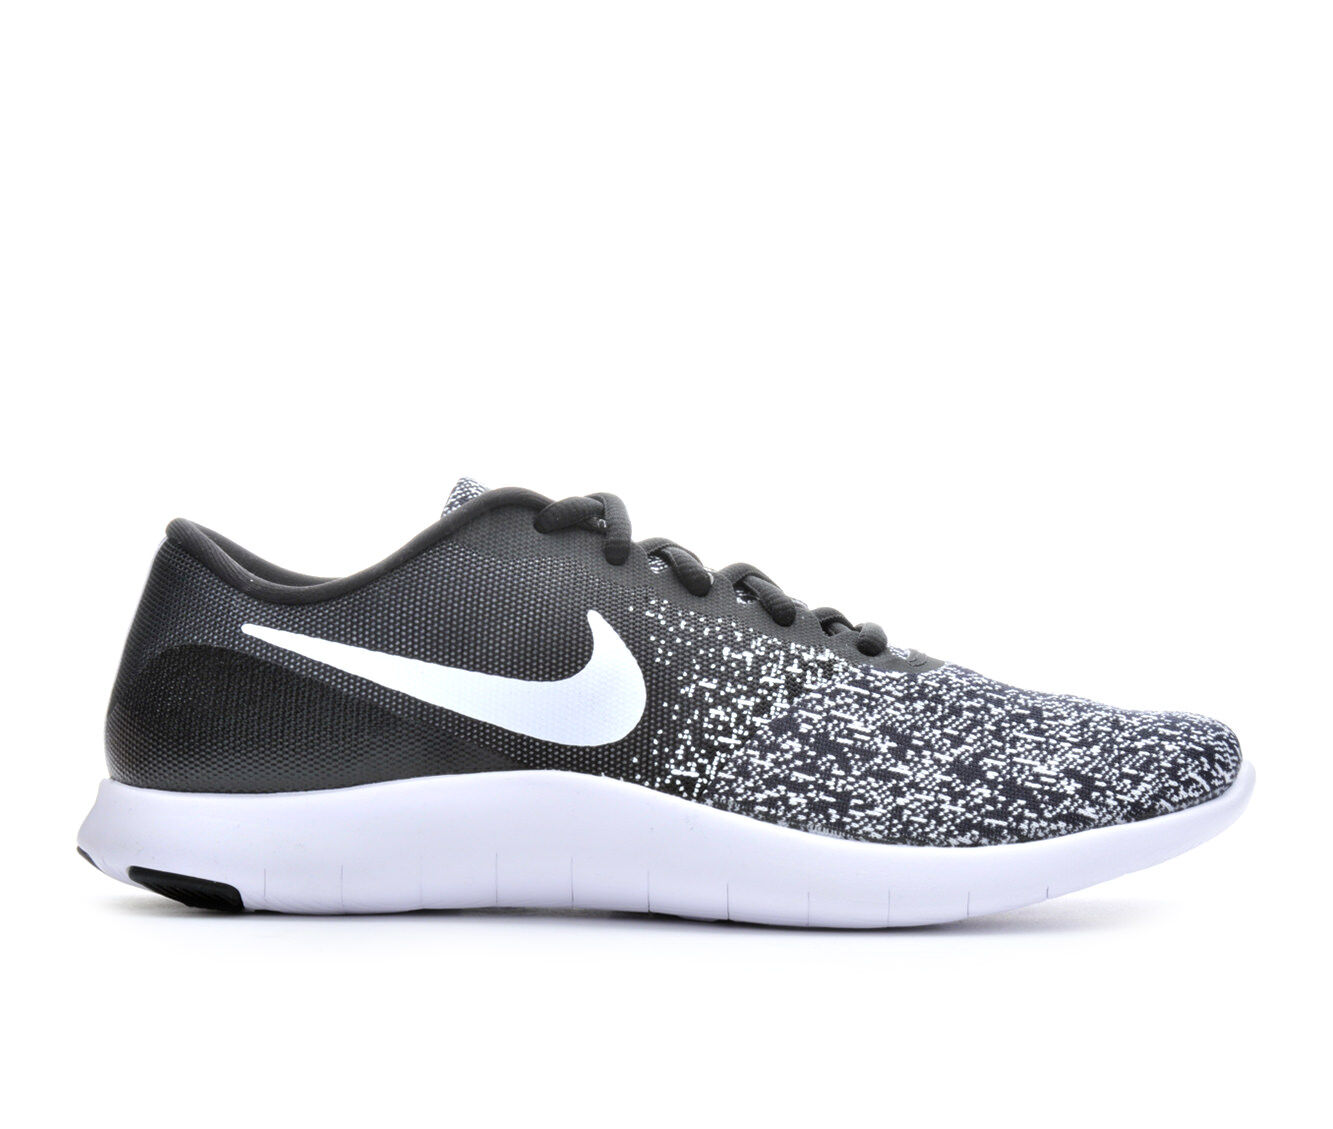 Super Specials Women's Nike Flex Contact Running Shoes Black/White